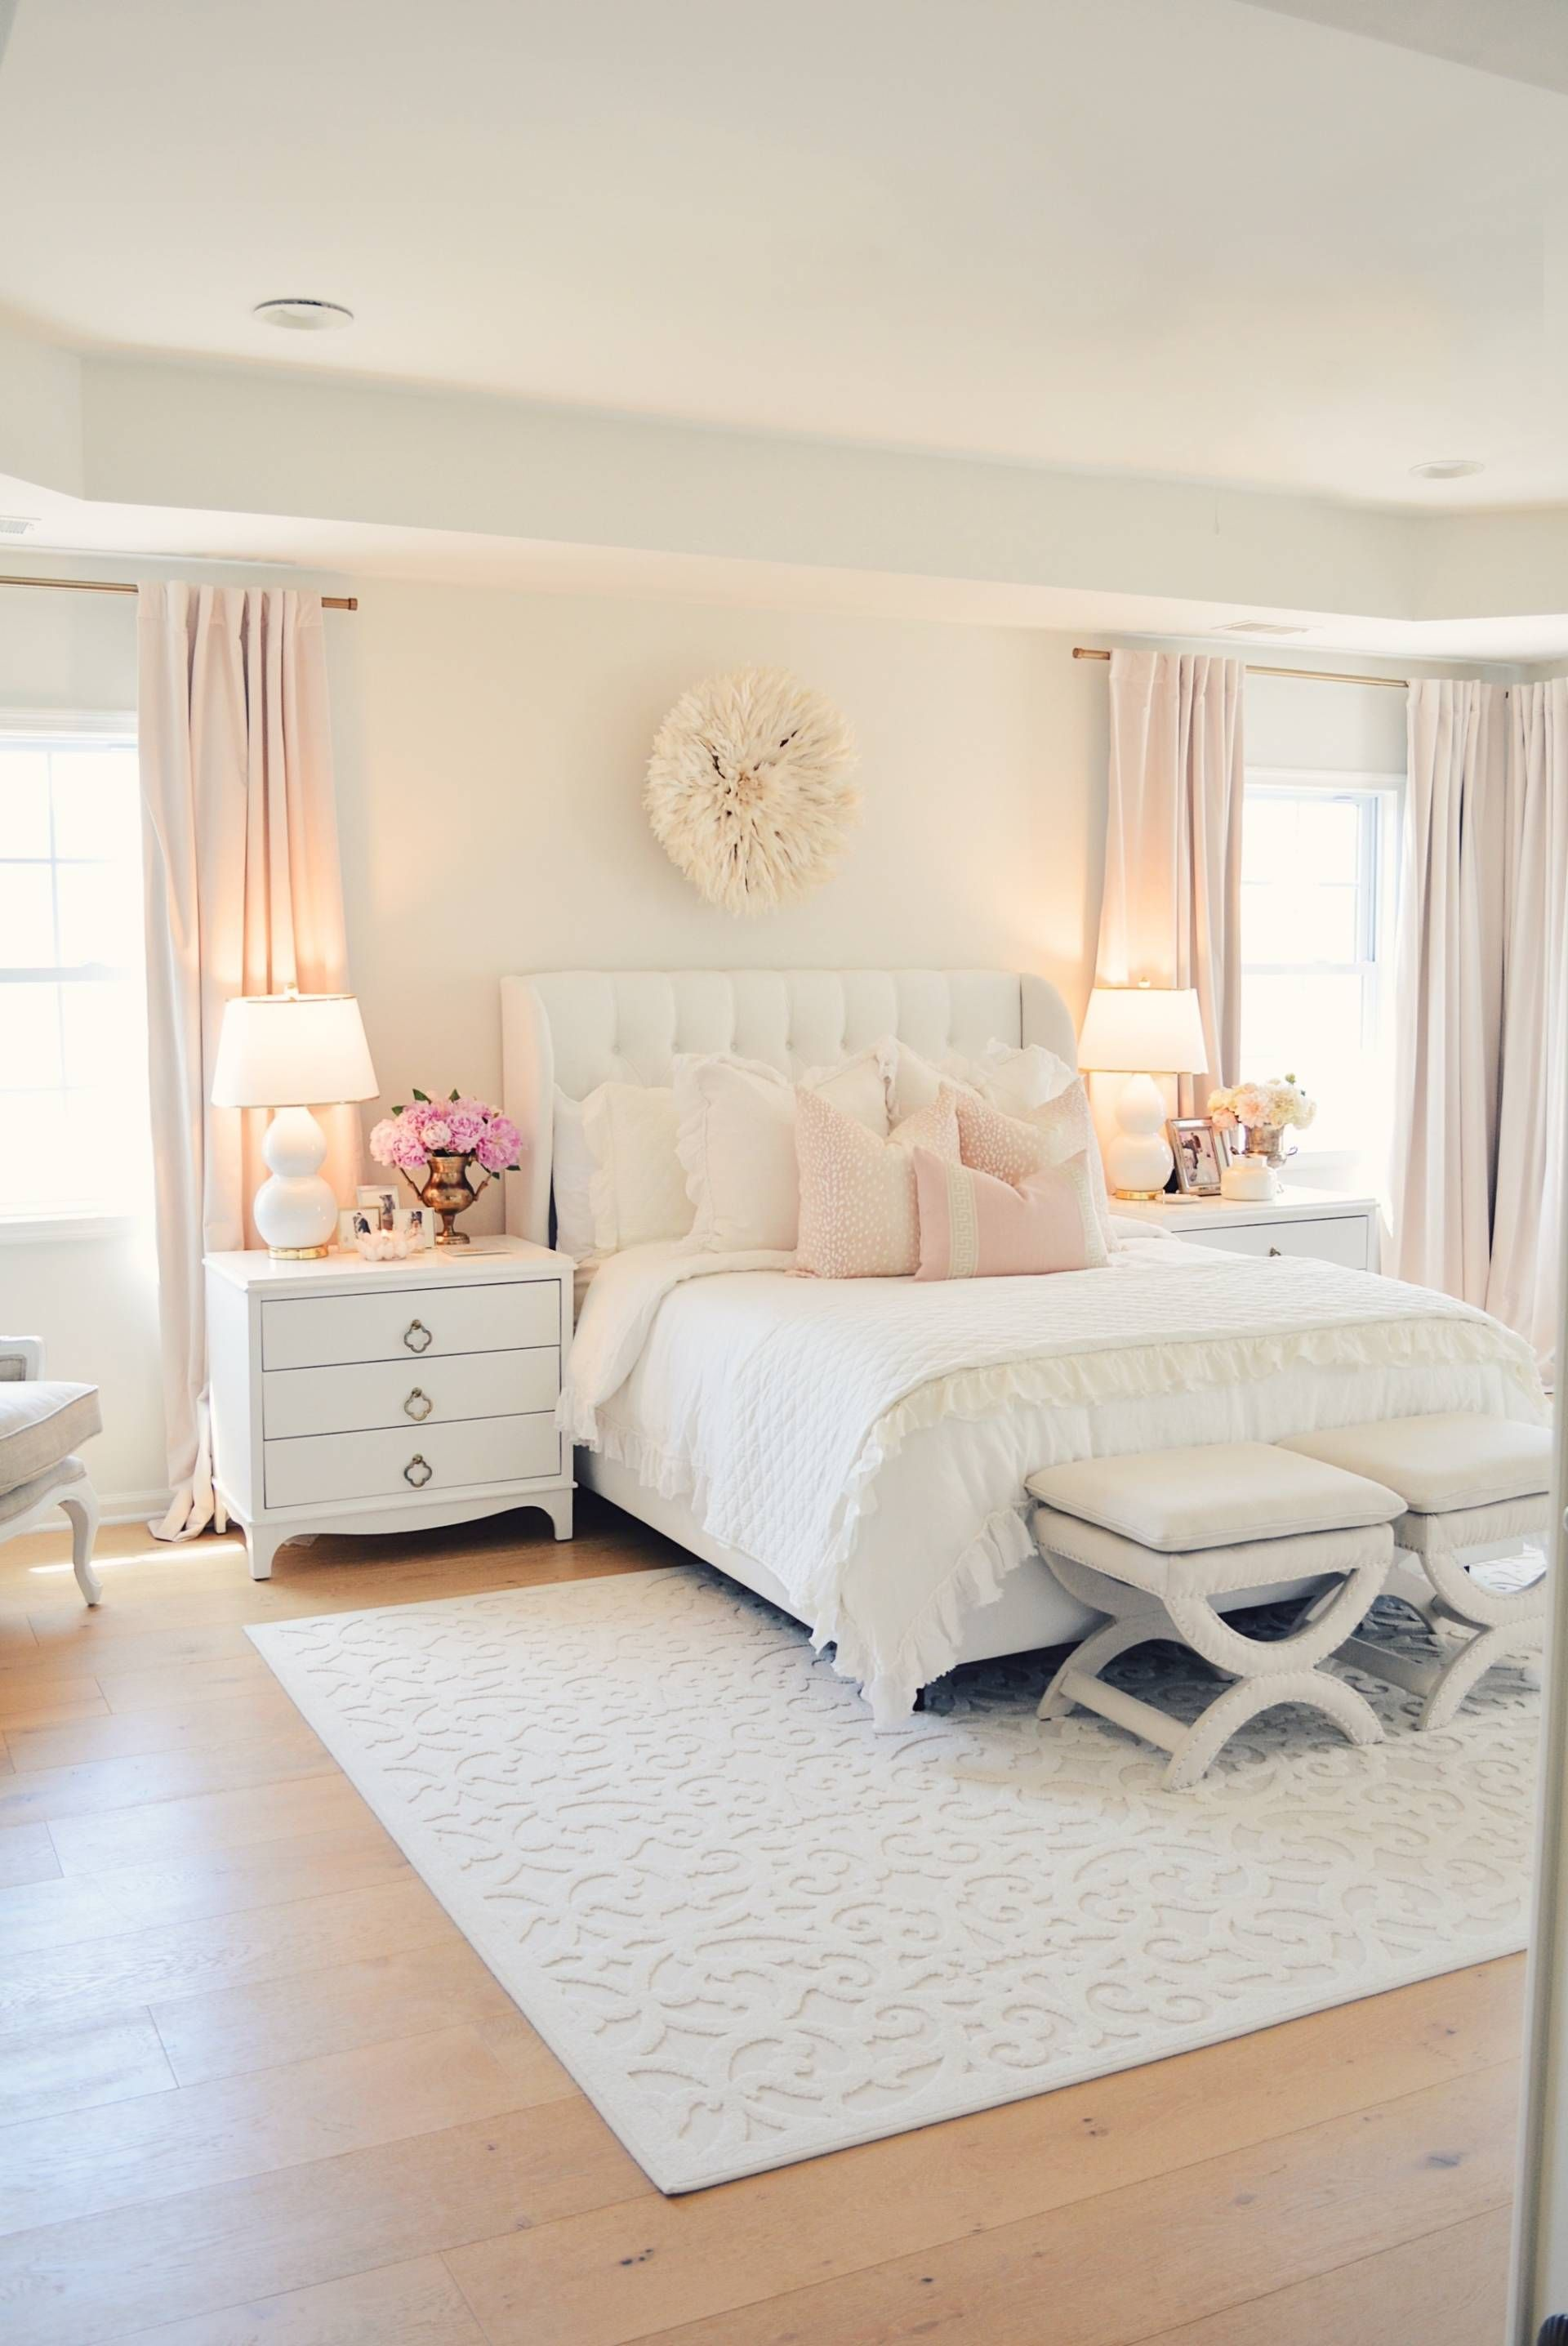 Elegant White Master Bedroom & Blush Decorative Pillows images